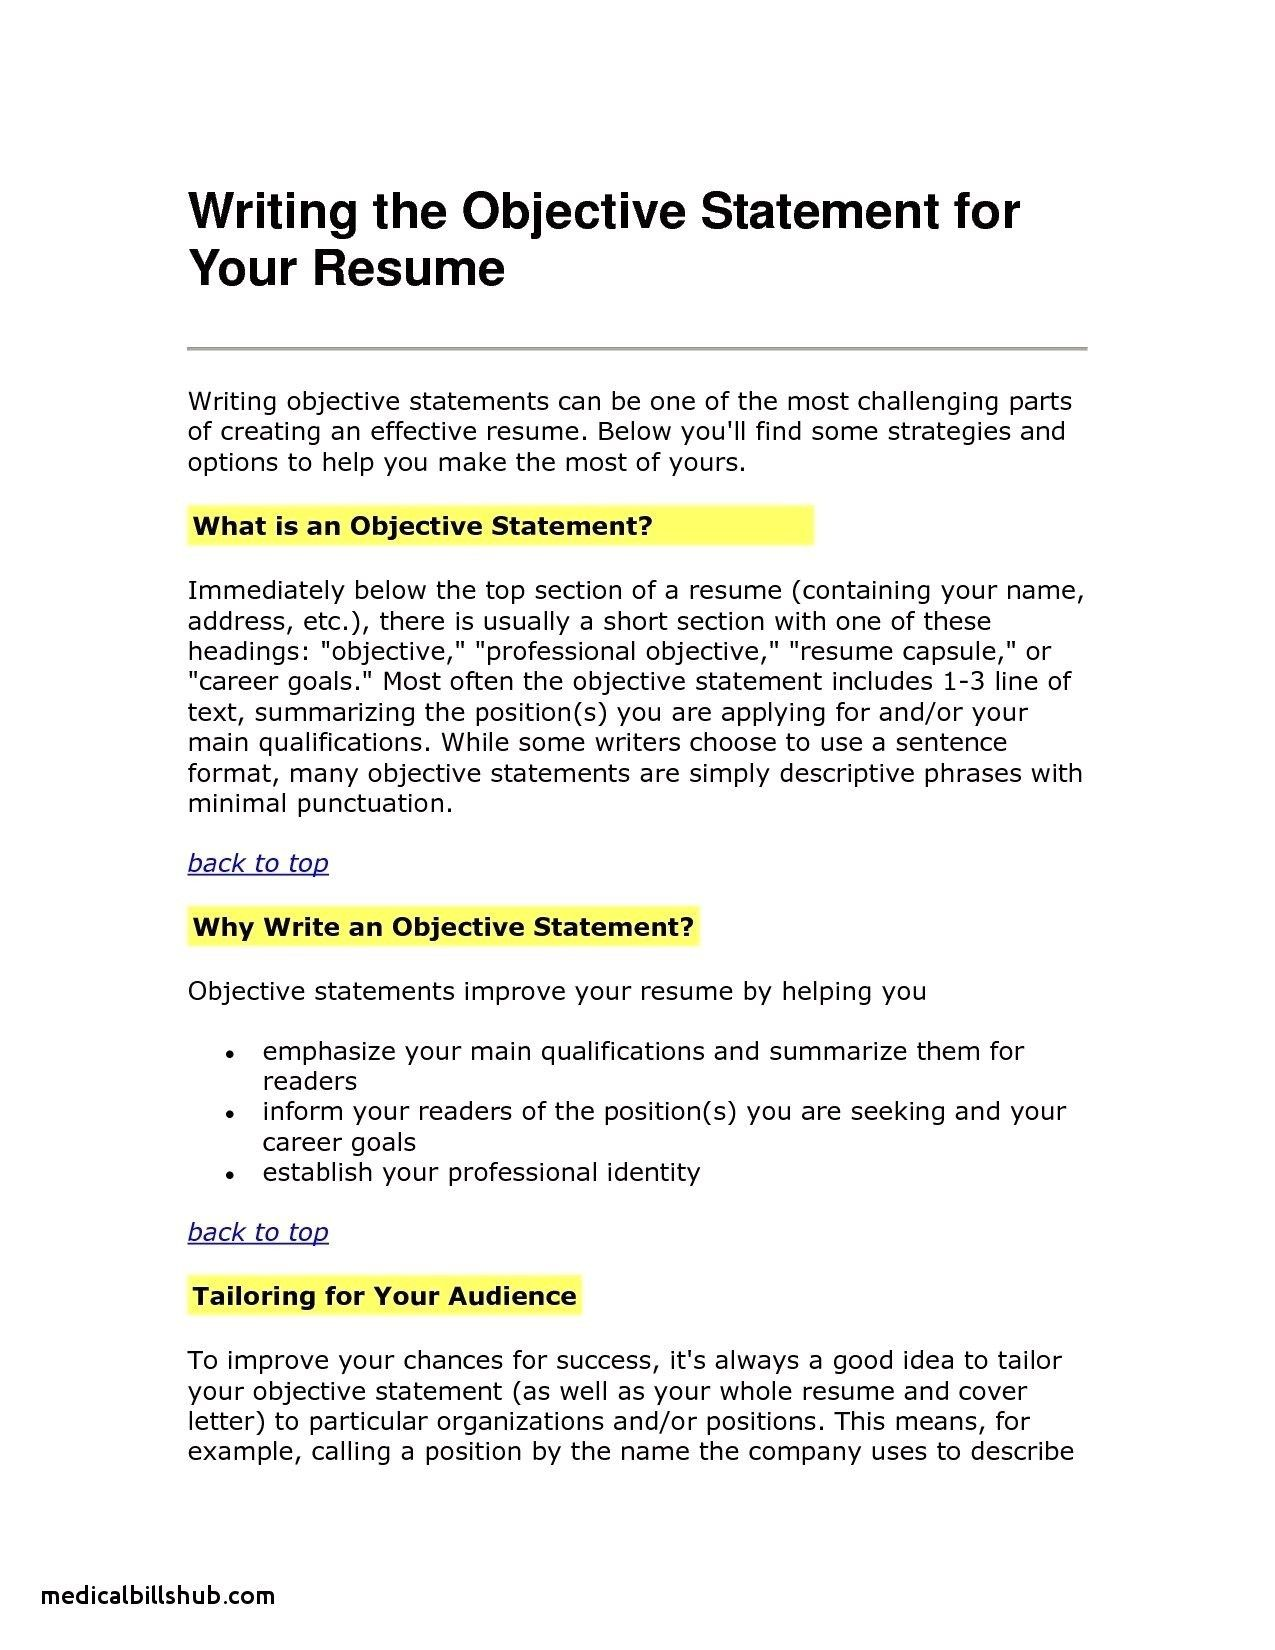 fresh cover letters for academic jobs resume objective statement effective letter see Resume Resume Cover Letter Objective